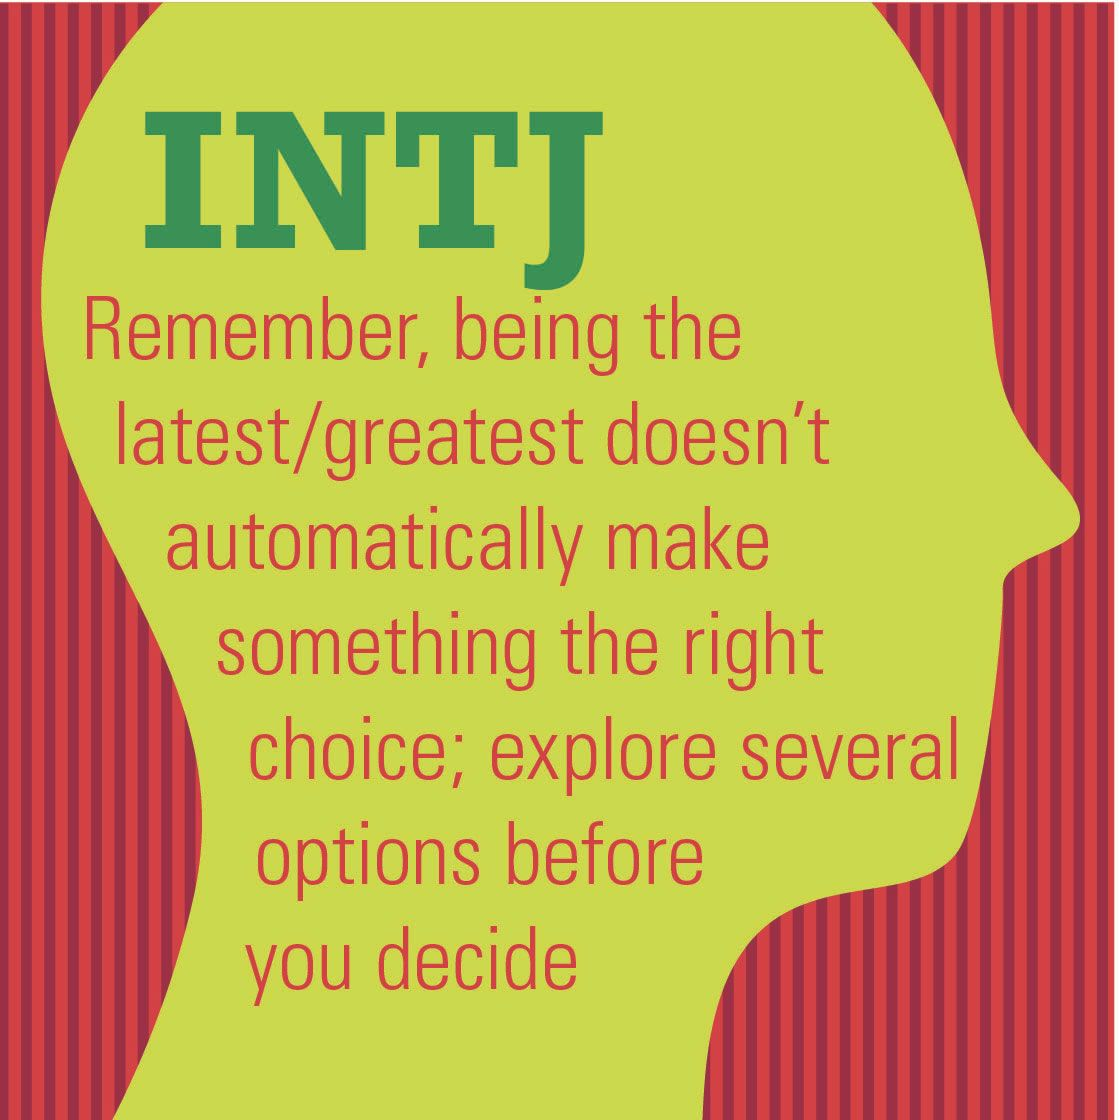 #INTJ: How can you make better decisions when looking into purchasing a car? Here are some car buying tips! #FordPersona #FordTrends #MBTI #carbuyingtips #myersbriggs #type